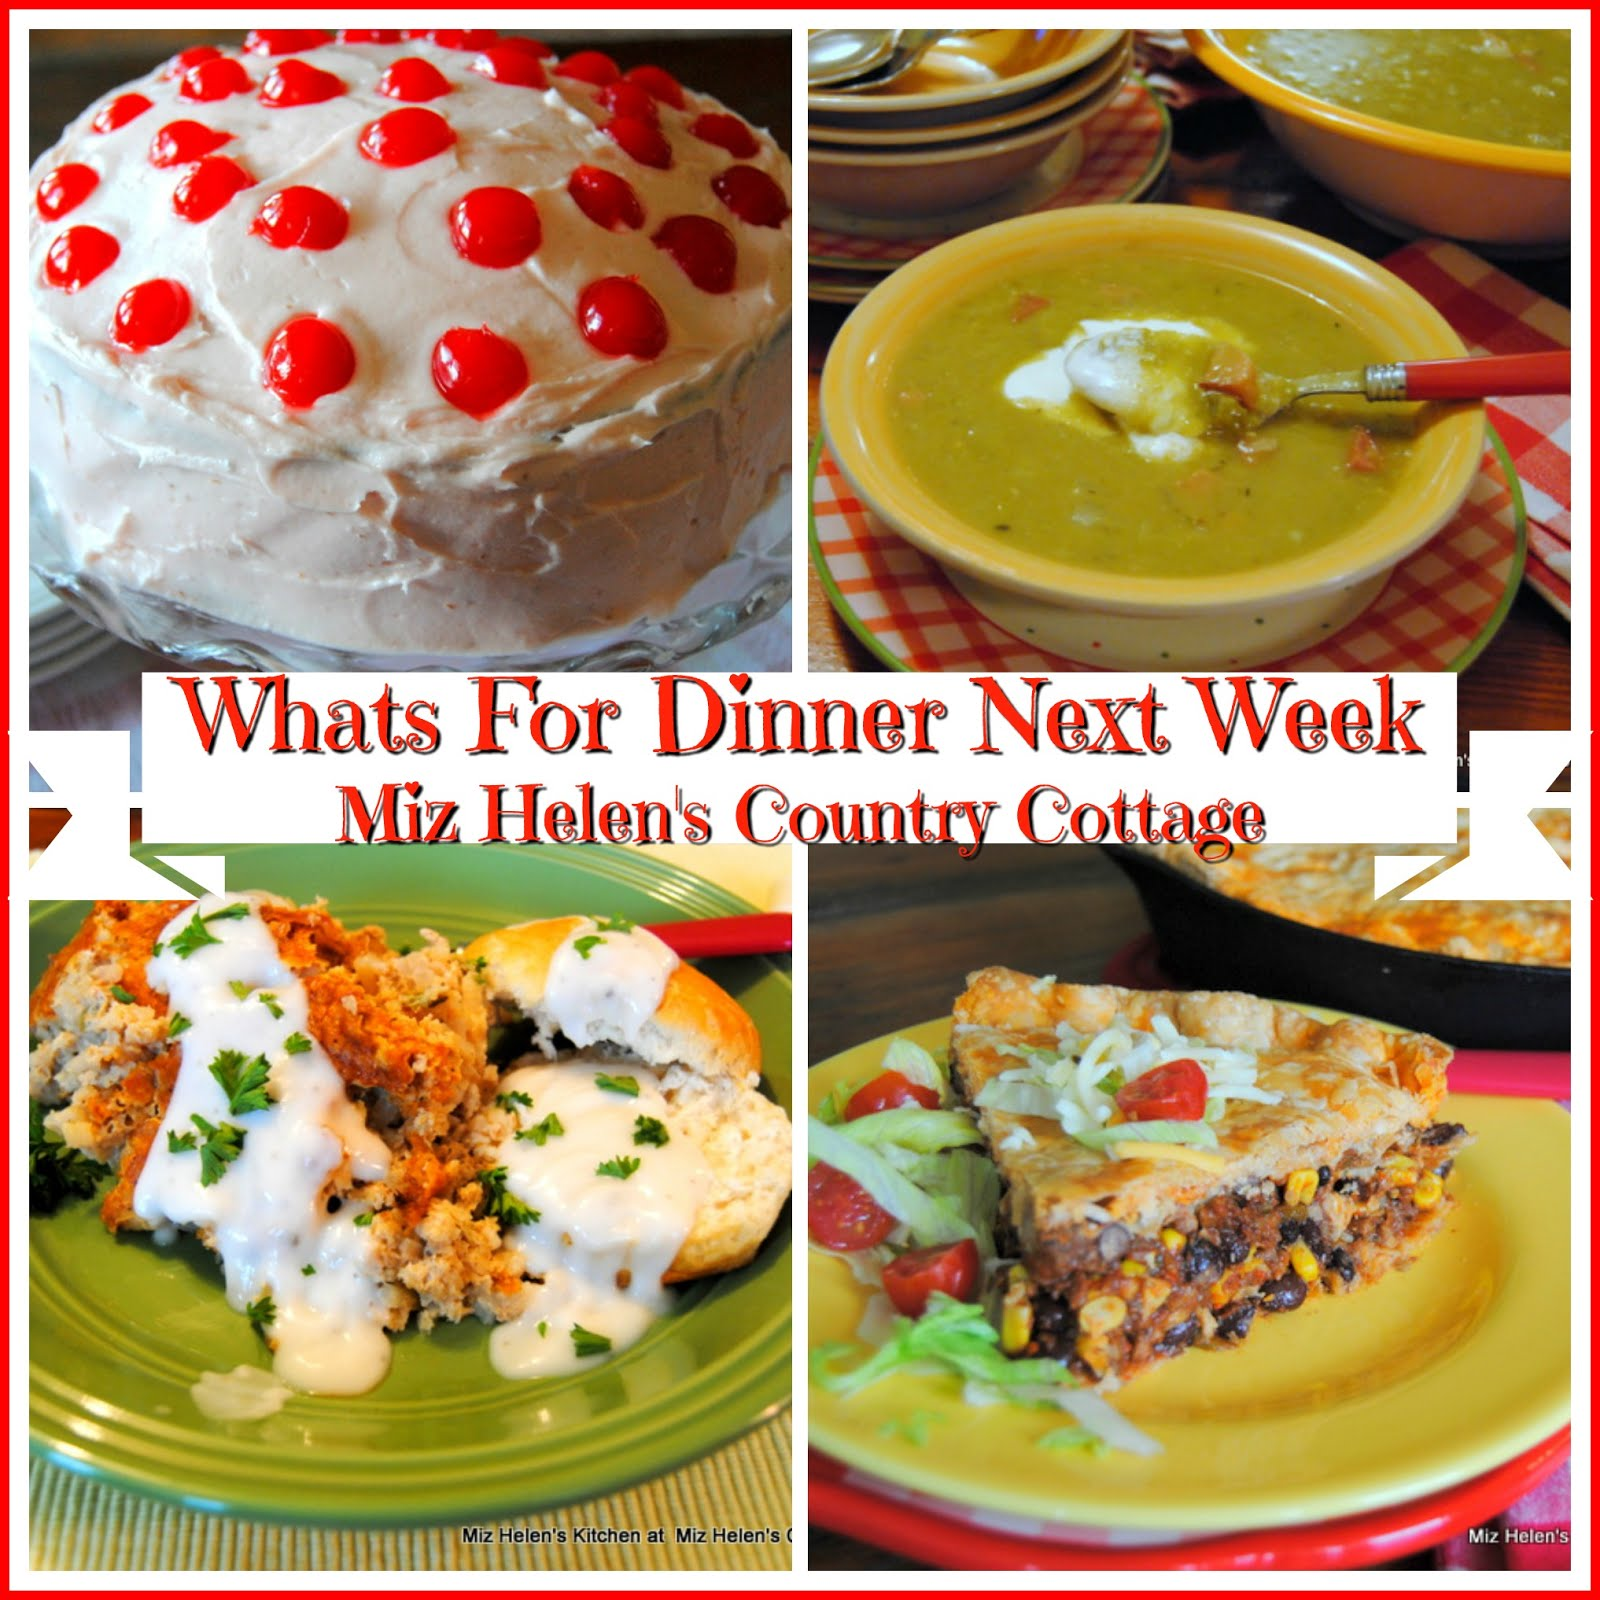 Whats For Dinner Next Week * Week of 2-17-19